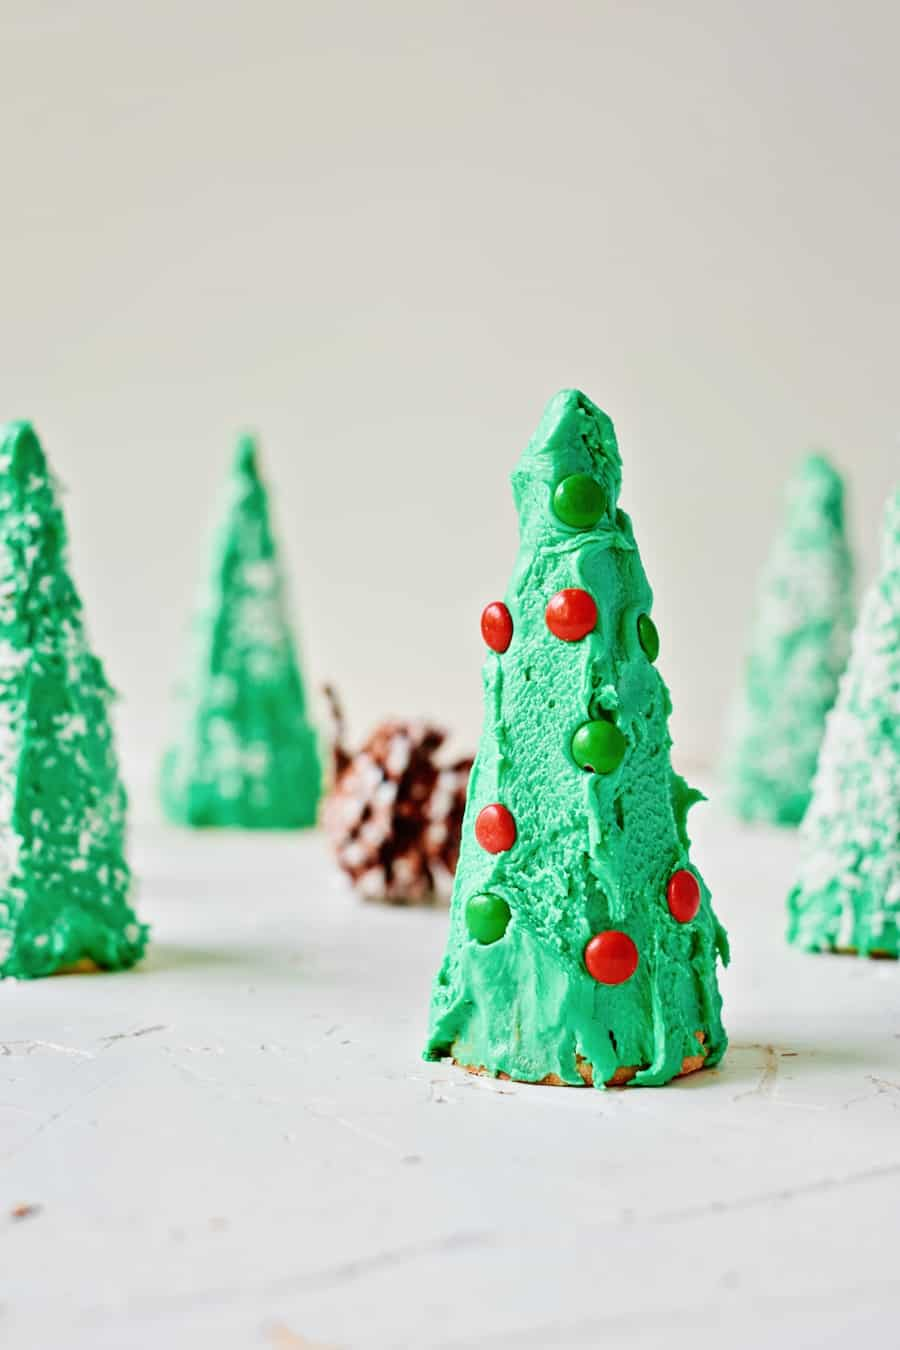 Ice Cream Cone Christmas Trees 0 Cute Christmas Treat For Kids